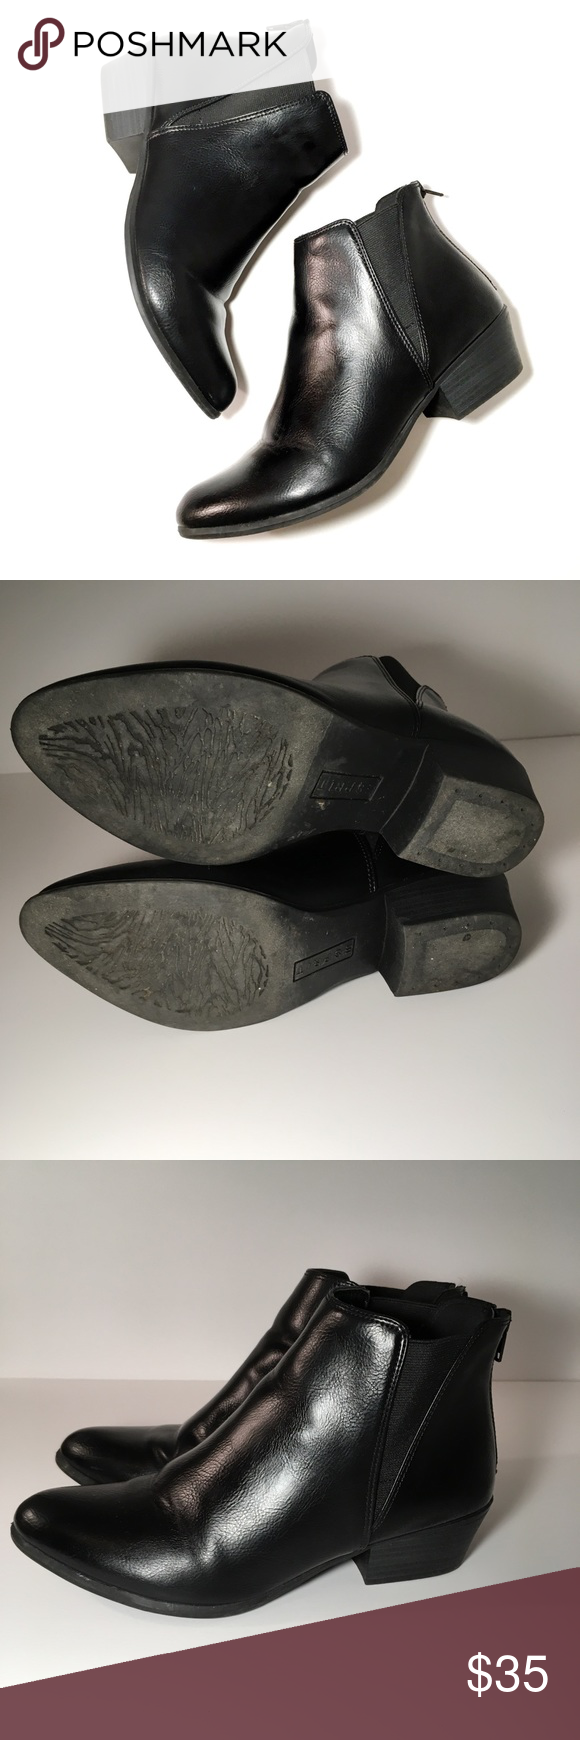 Esprit Black Tiffany Ankle Boots Esprit Black Tiffany Ankle Boots. Size 8 and features a zipper at the back of the shoes. Super comfortable and look great with skinny jeans! Esprit Shoes Ankle Boots & Booties #skinnyjeansandankleboots